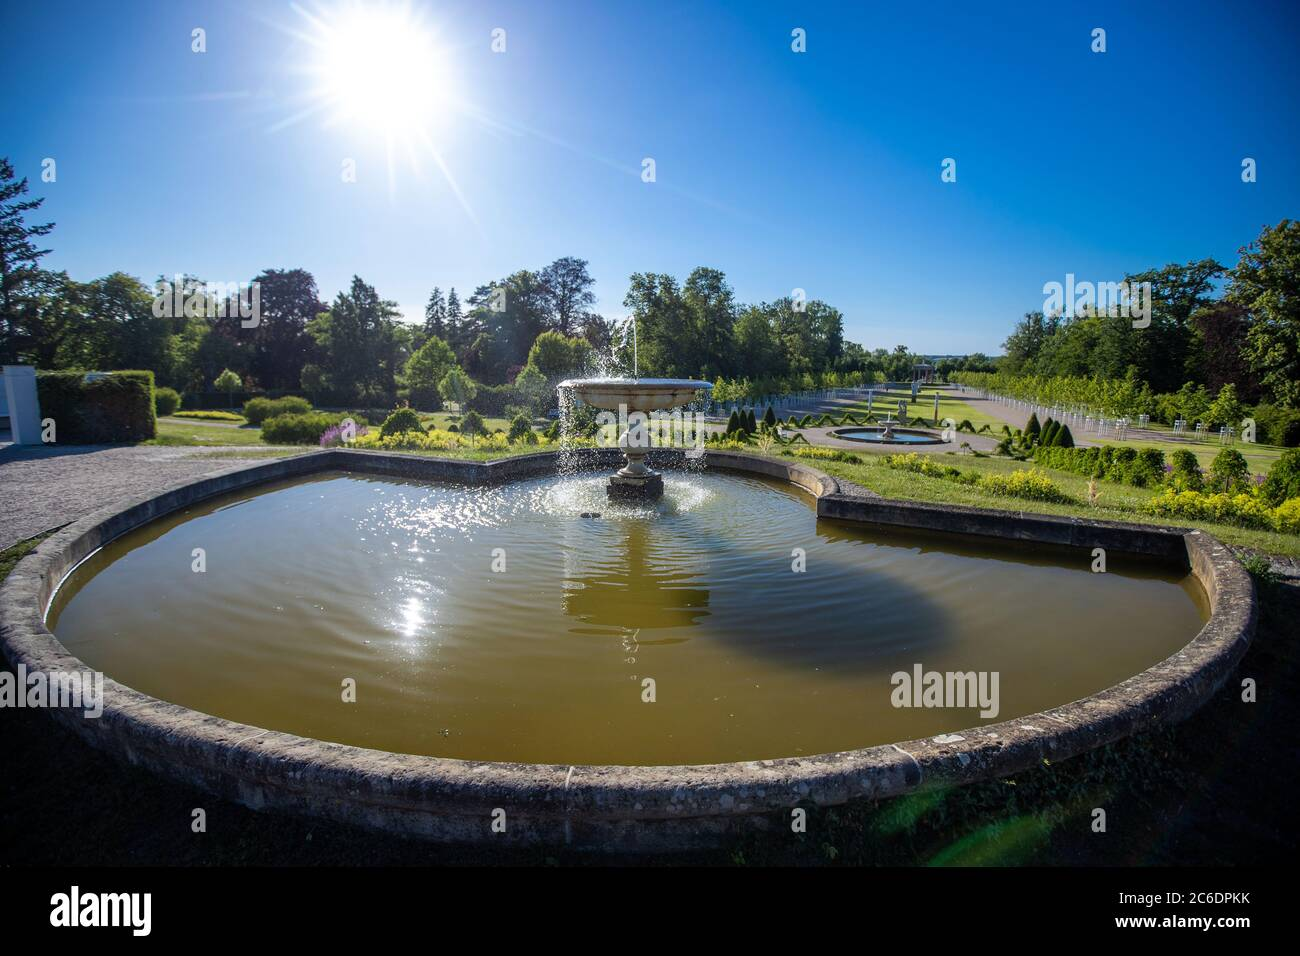 Neustrelitz, Germany. 23rd June, 2020. The palace garden was completed in 2019 after about ten years of construction and opened to visitors. The BBL Mecklenburg-Western Pomerania Construction and Real Estate Company, together with monument conservationists, restored the original state of the baroque park in several construction phases according to old plans. A total of 7.6 million euros were invested from state and EU funds. Credit: Jens Büttner/dpa-Zentralbild/ZB/dpa/Alamy Live News Stock Photo